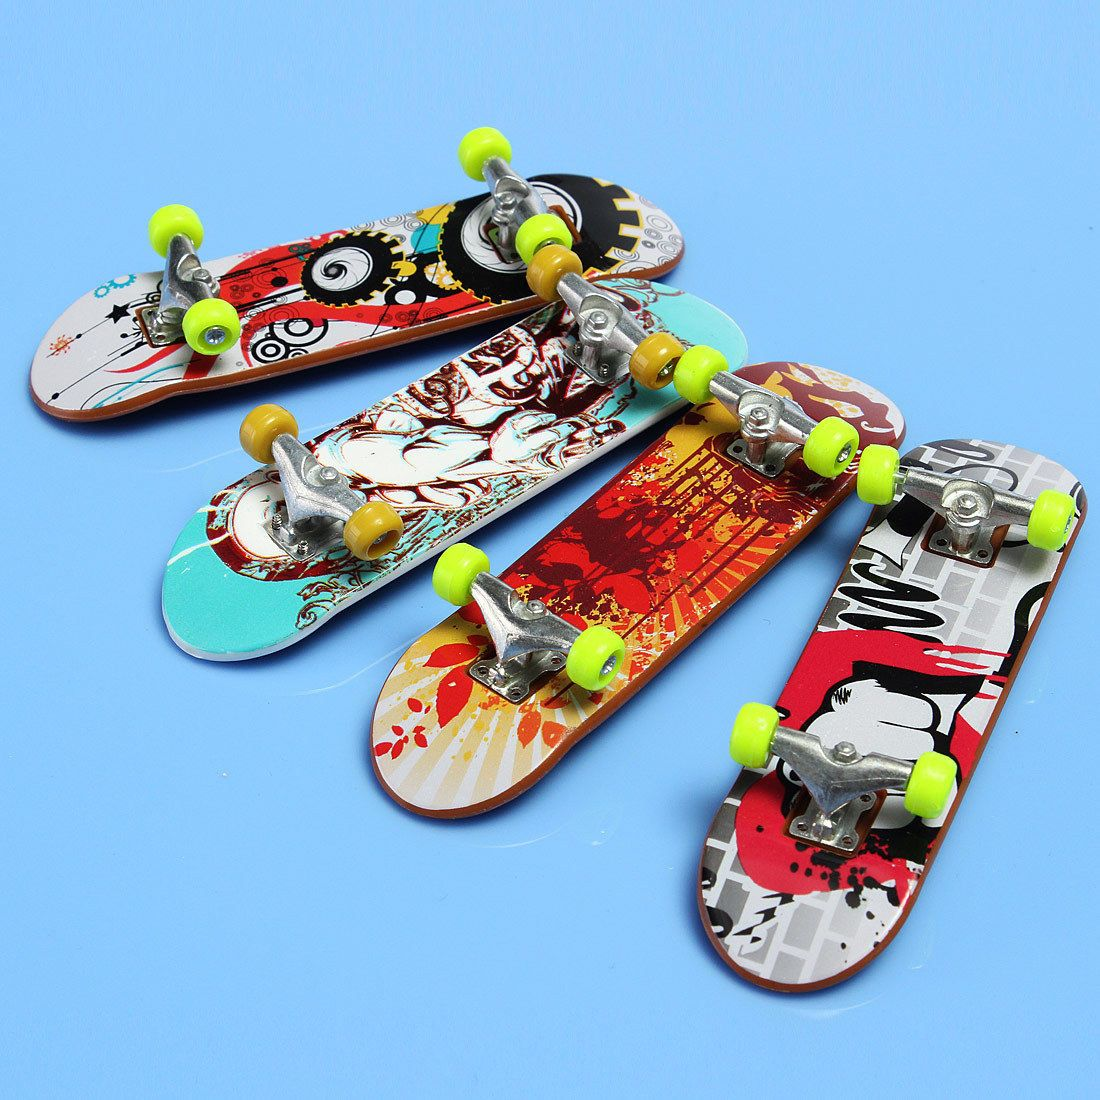 Sports eBay Toys & Games Finger skateboard, Mini